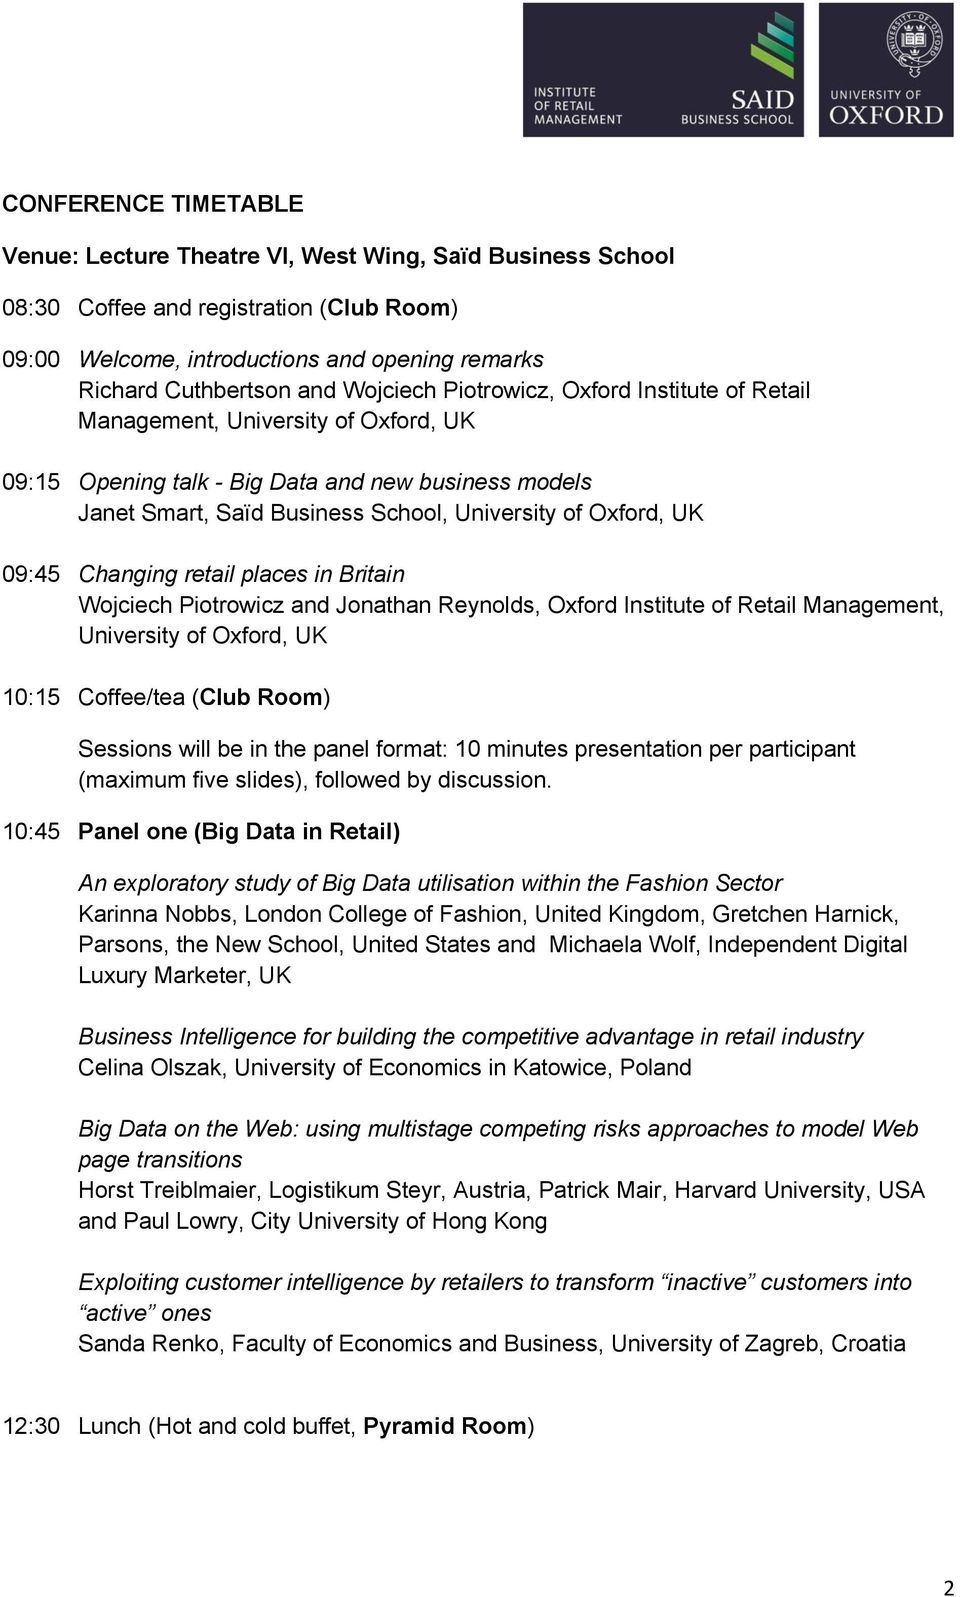 09:45 Changing retail places in Britain Wojciech Piotrowicz and Jonathan Reynolds, Oxford Institute of Retail Management, University of Oxford, UK 10:15 Coffee/tea (Club Room) Sessions will be in the